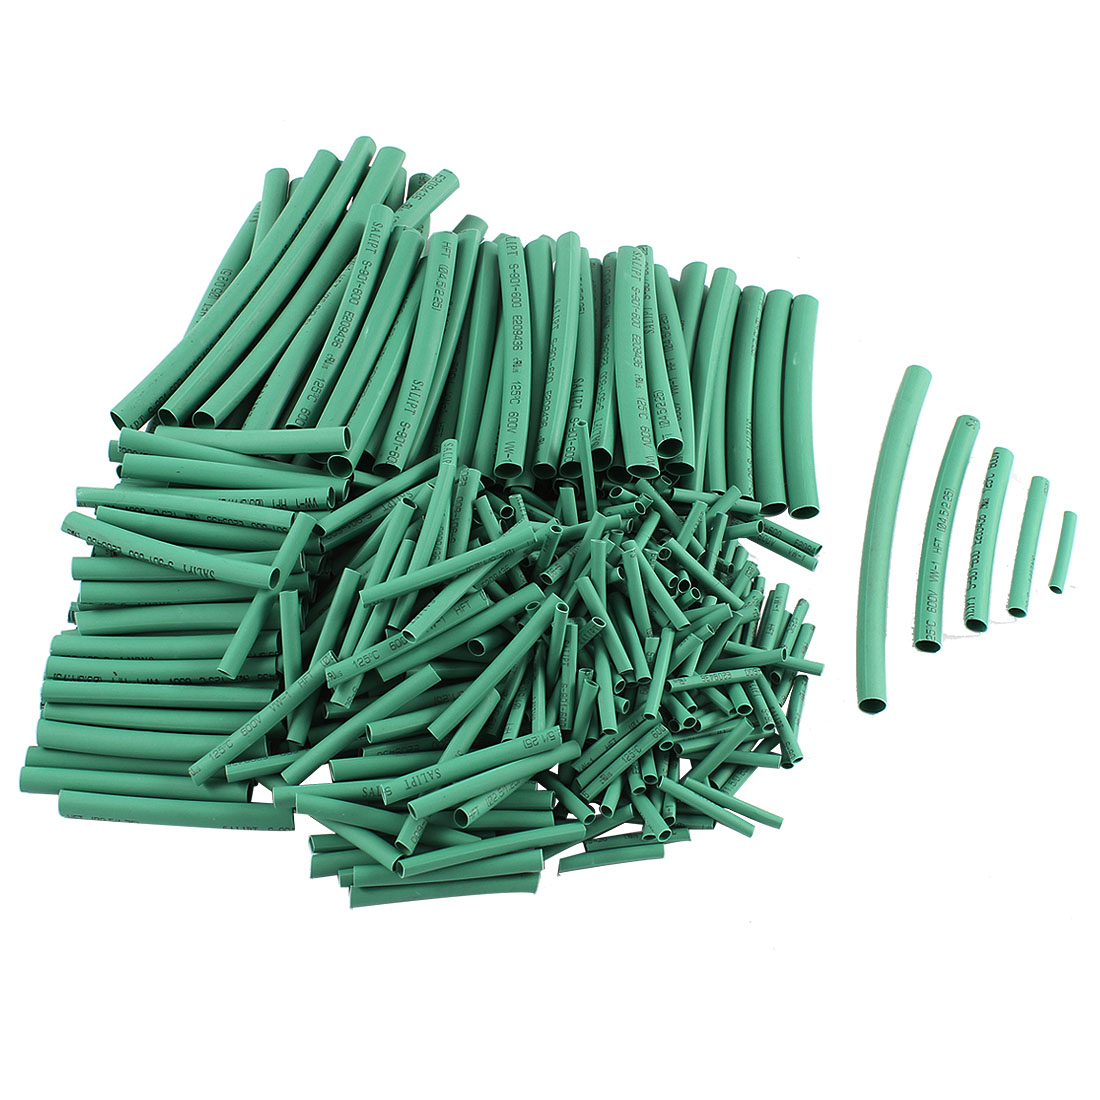 410 Pcs 5 Sizes Polyolefin Heat Shrink Tubing Cable Sleeve Green